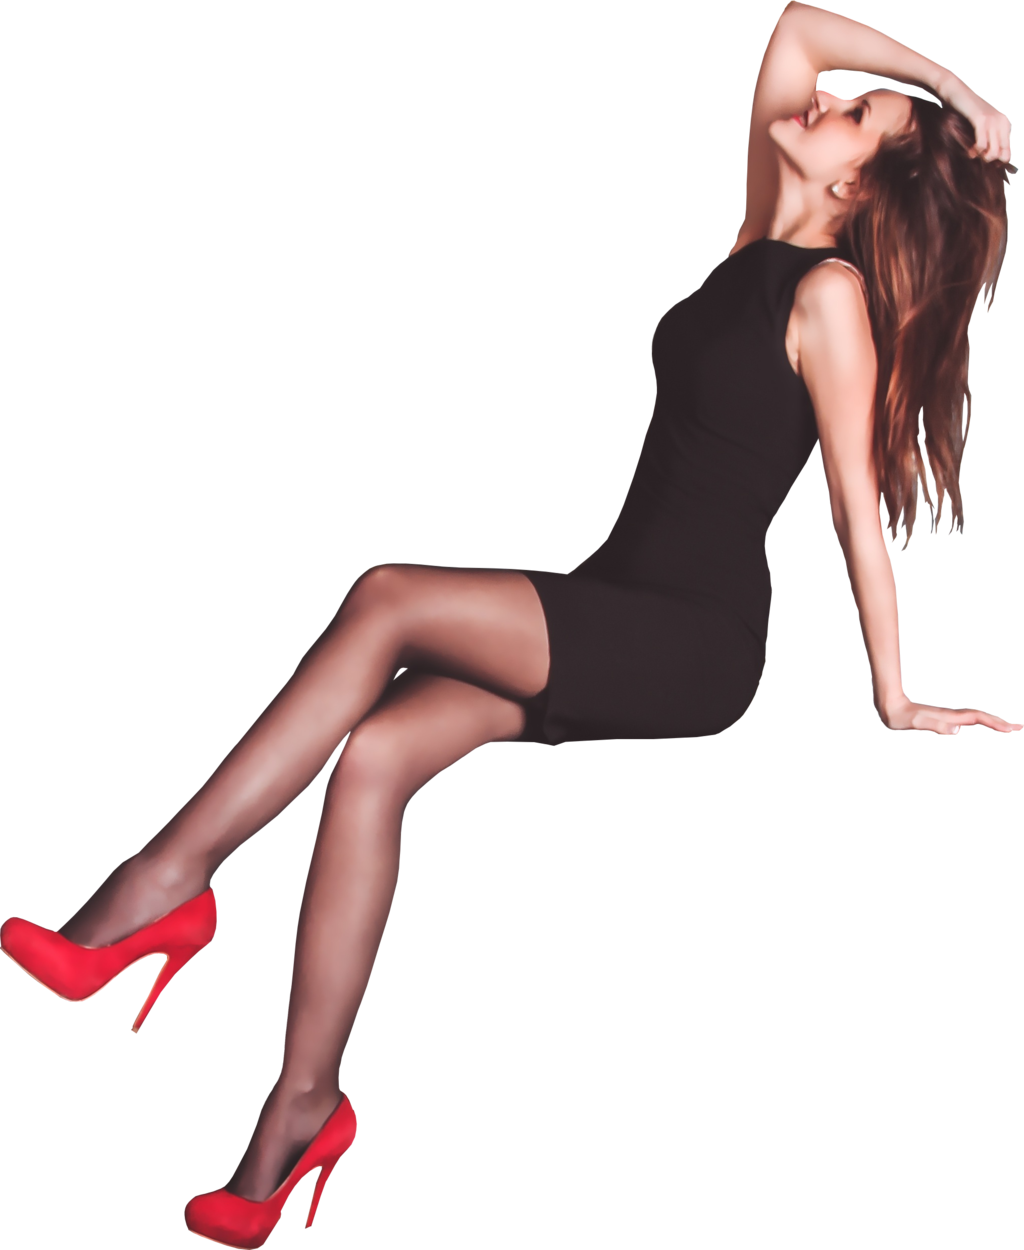 Fashion girls png. Transparent images pluspng girlpngbybettadenudlzmpnggirl